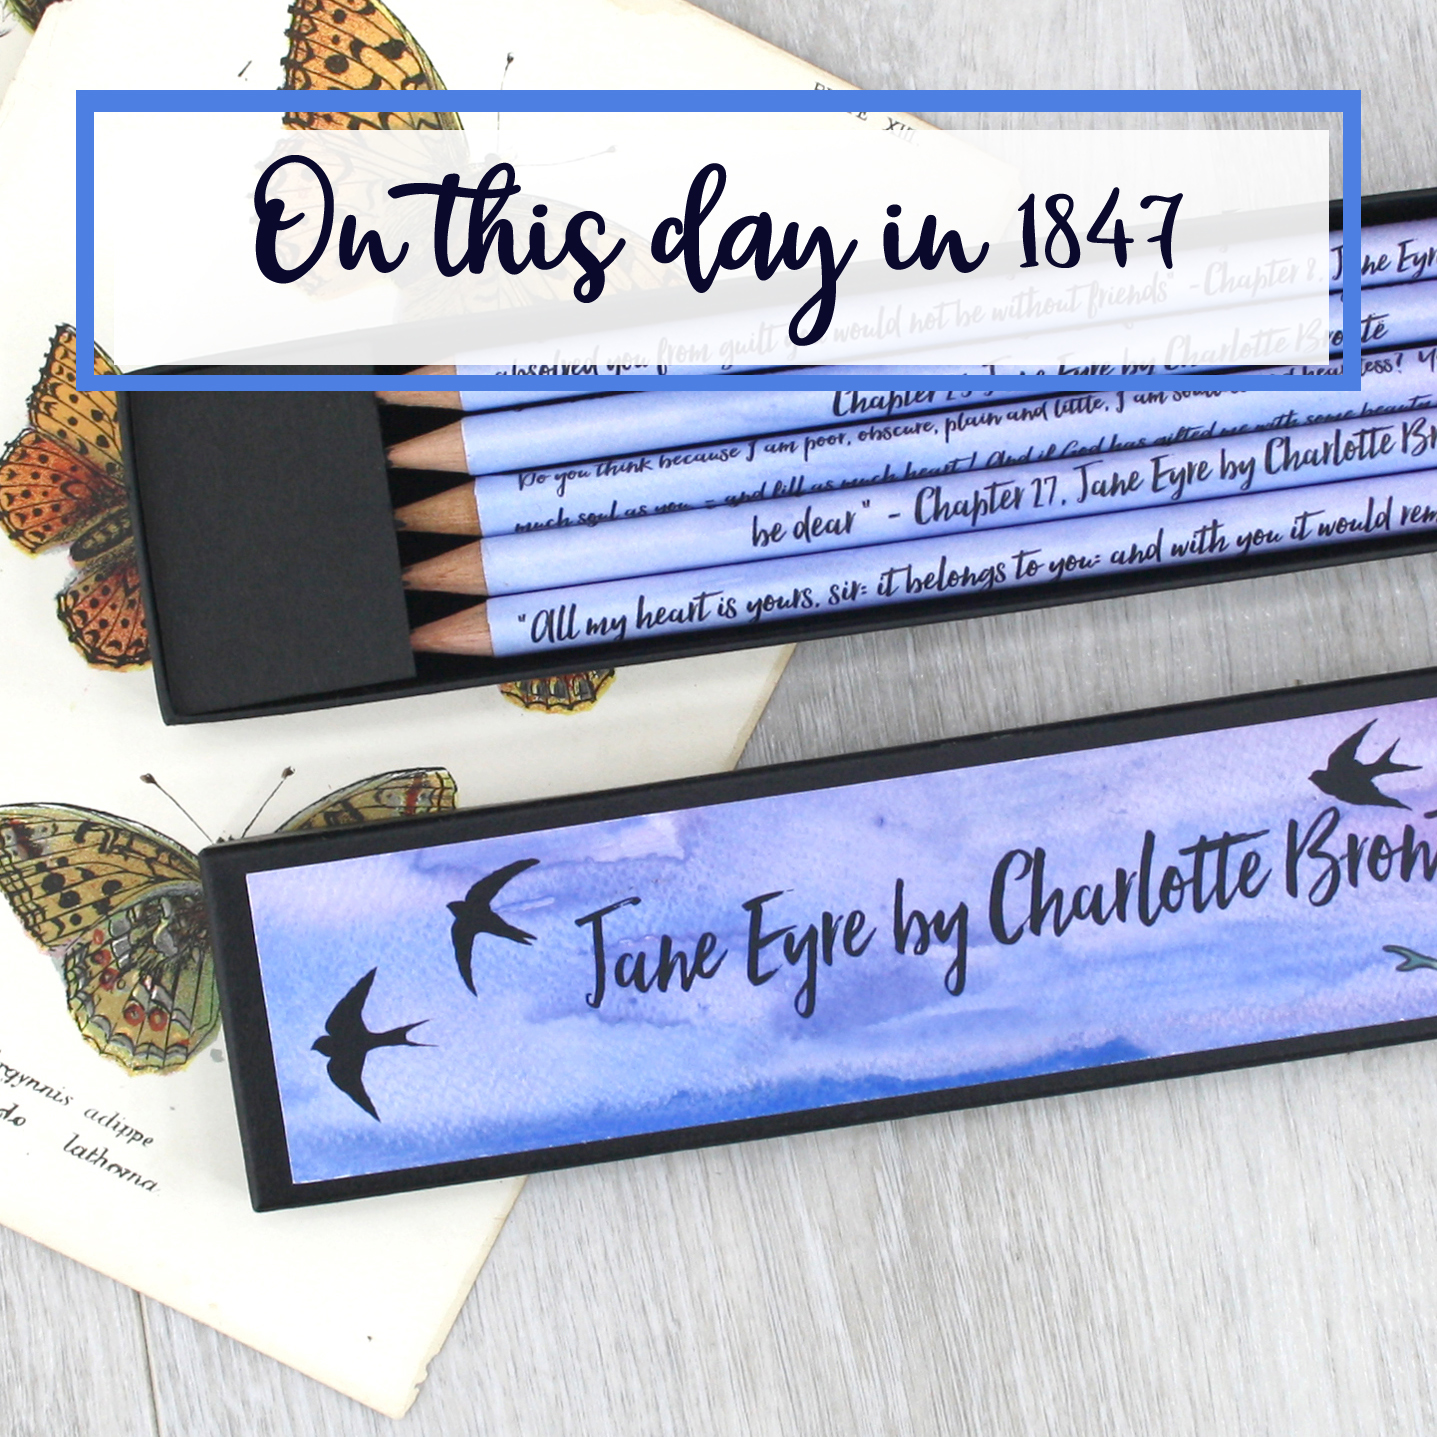 on this day in 1847 Jane eyre was published 16th october